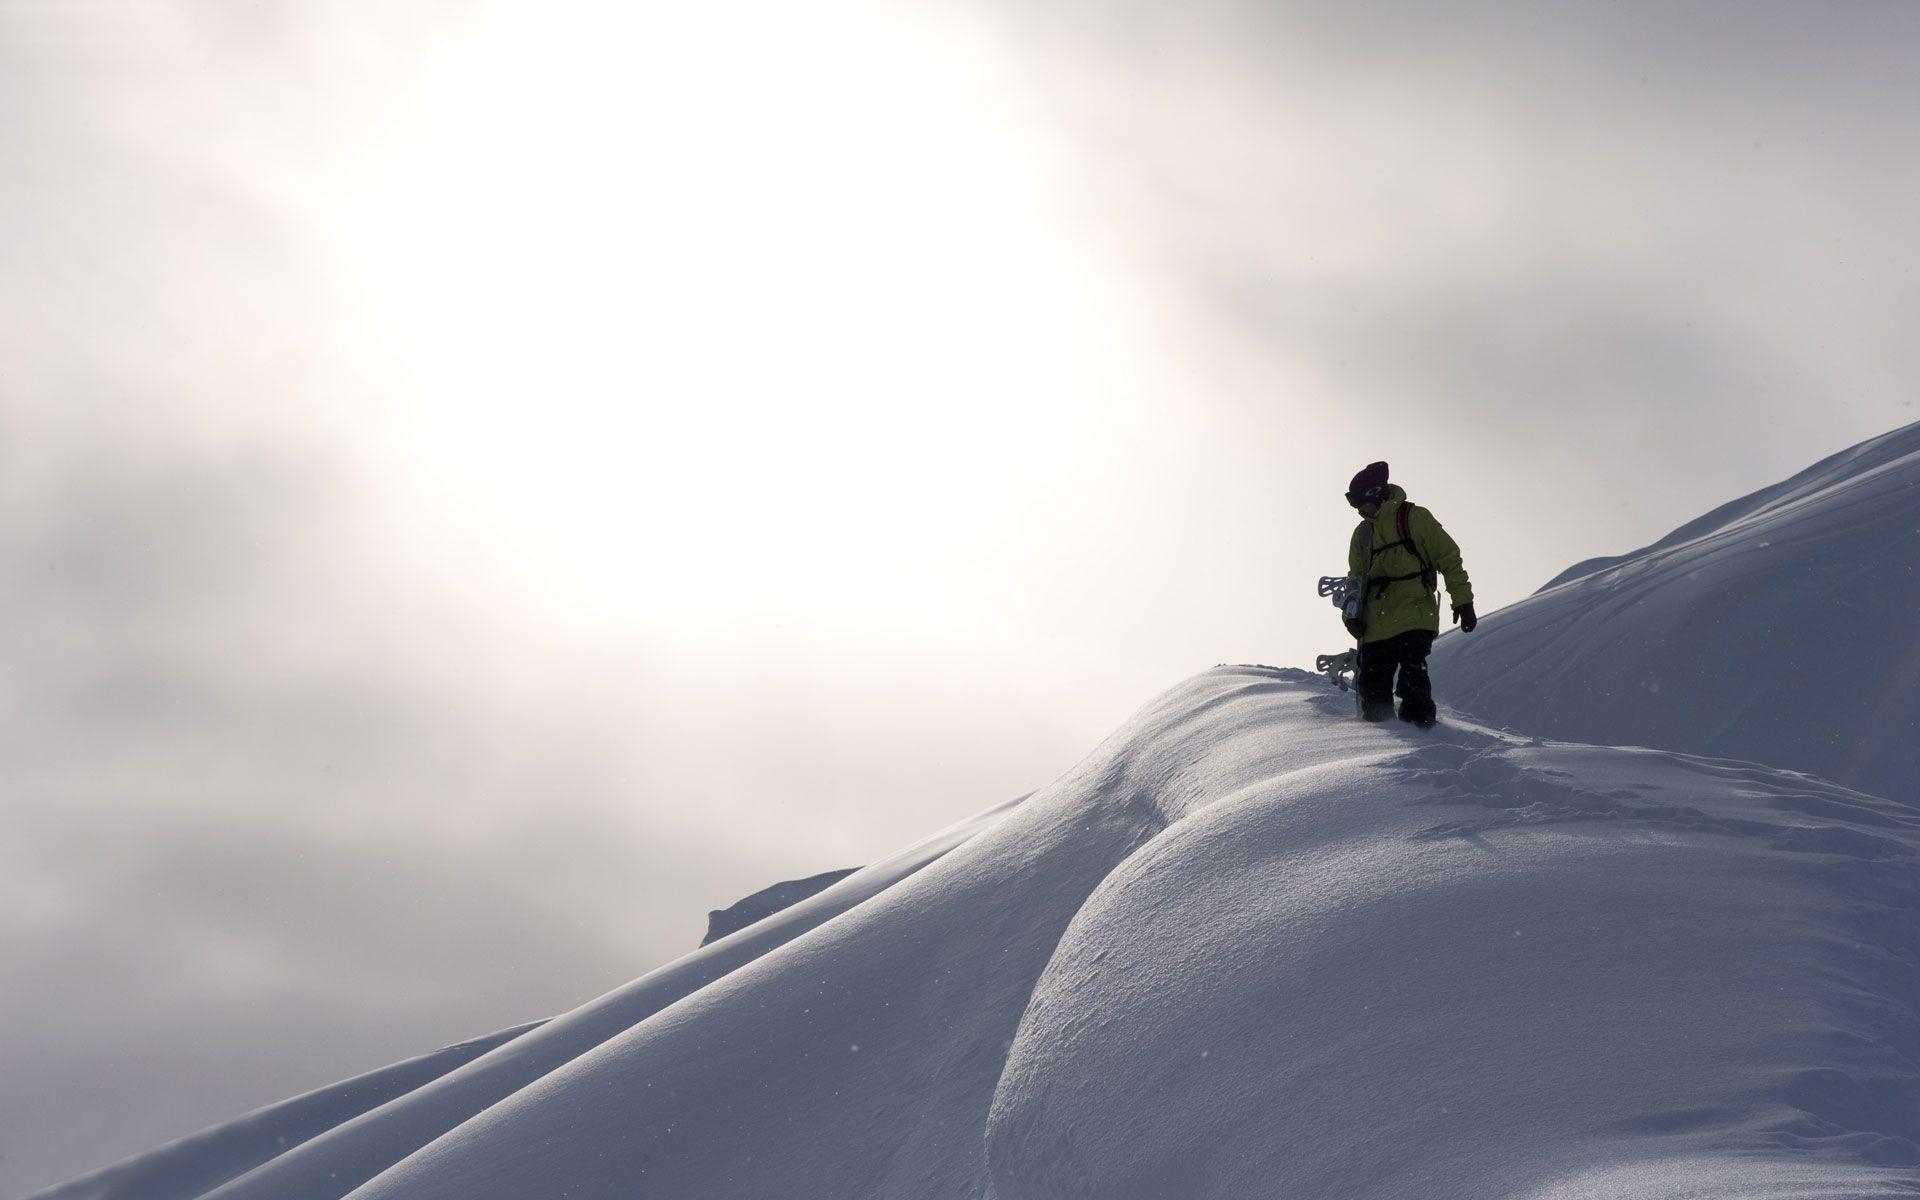 snowboard outdoor wallpaper desktop - photo #25